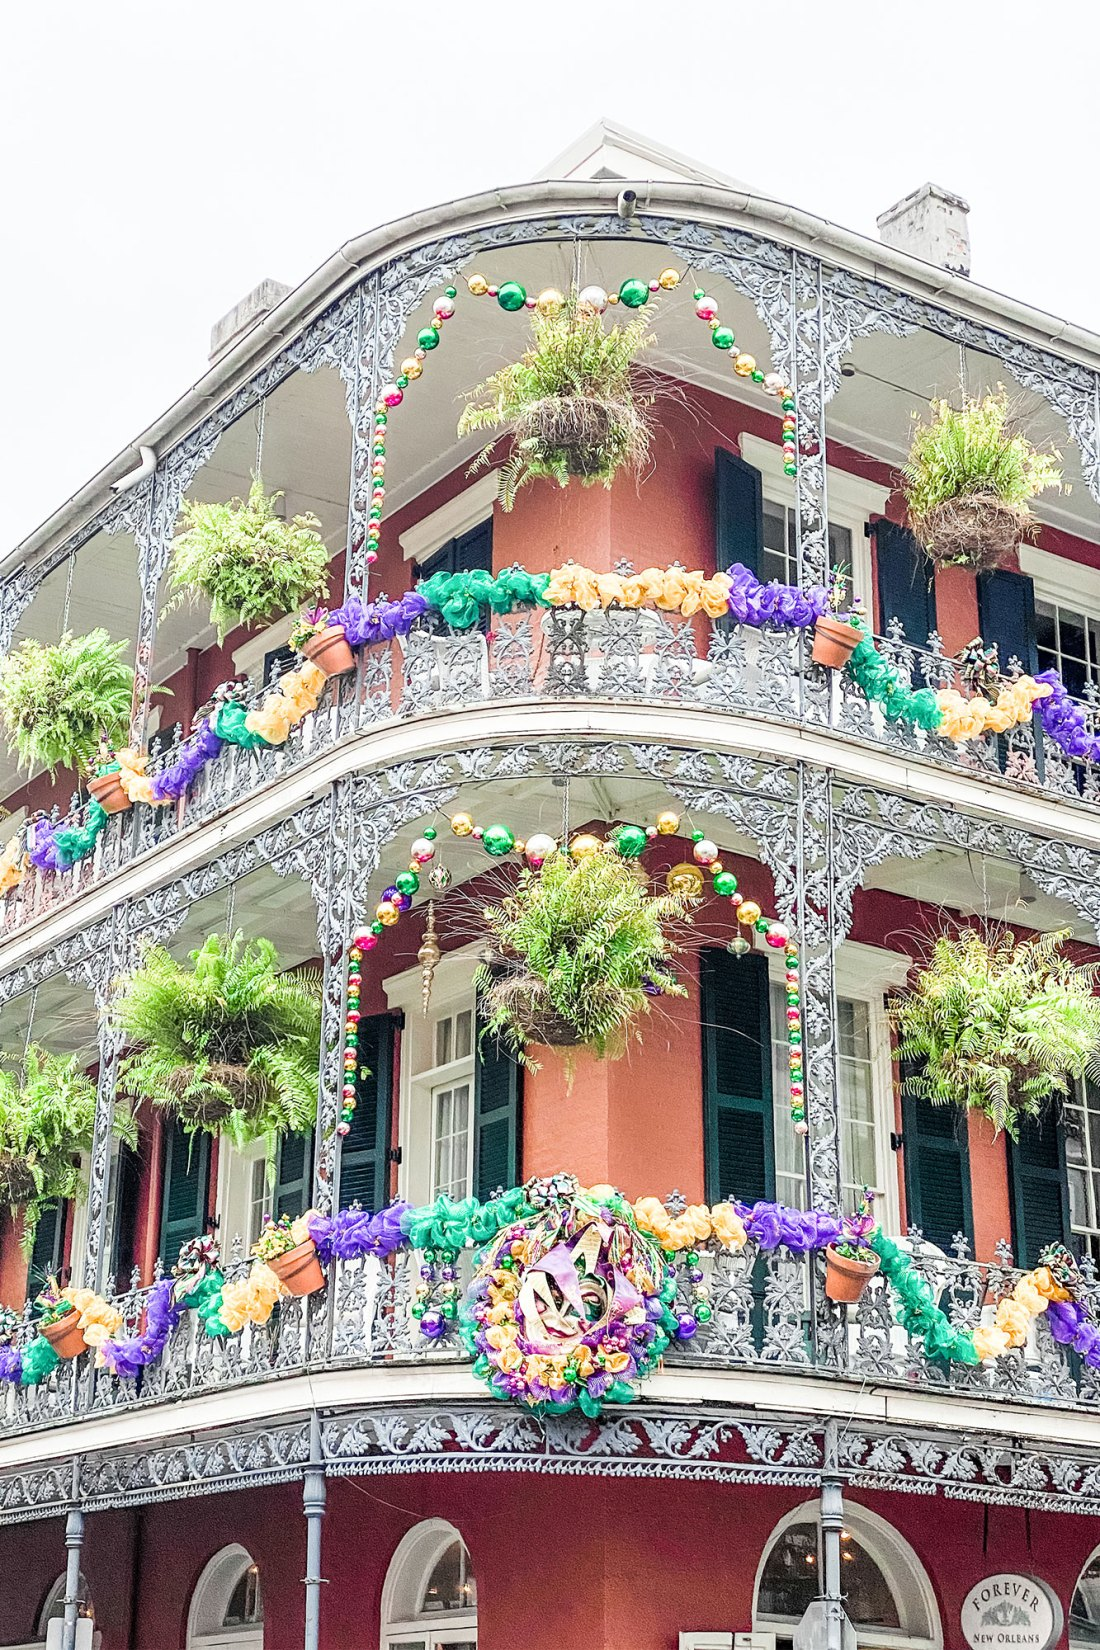 Brick building with wrought iron balcony and hanging plants in New Orleans